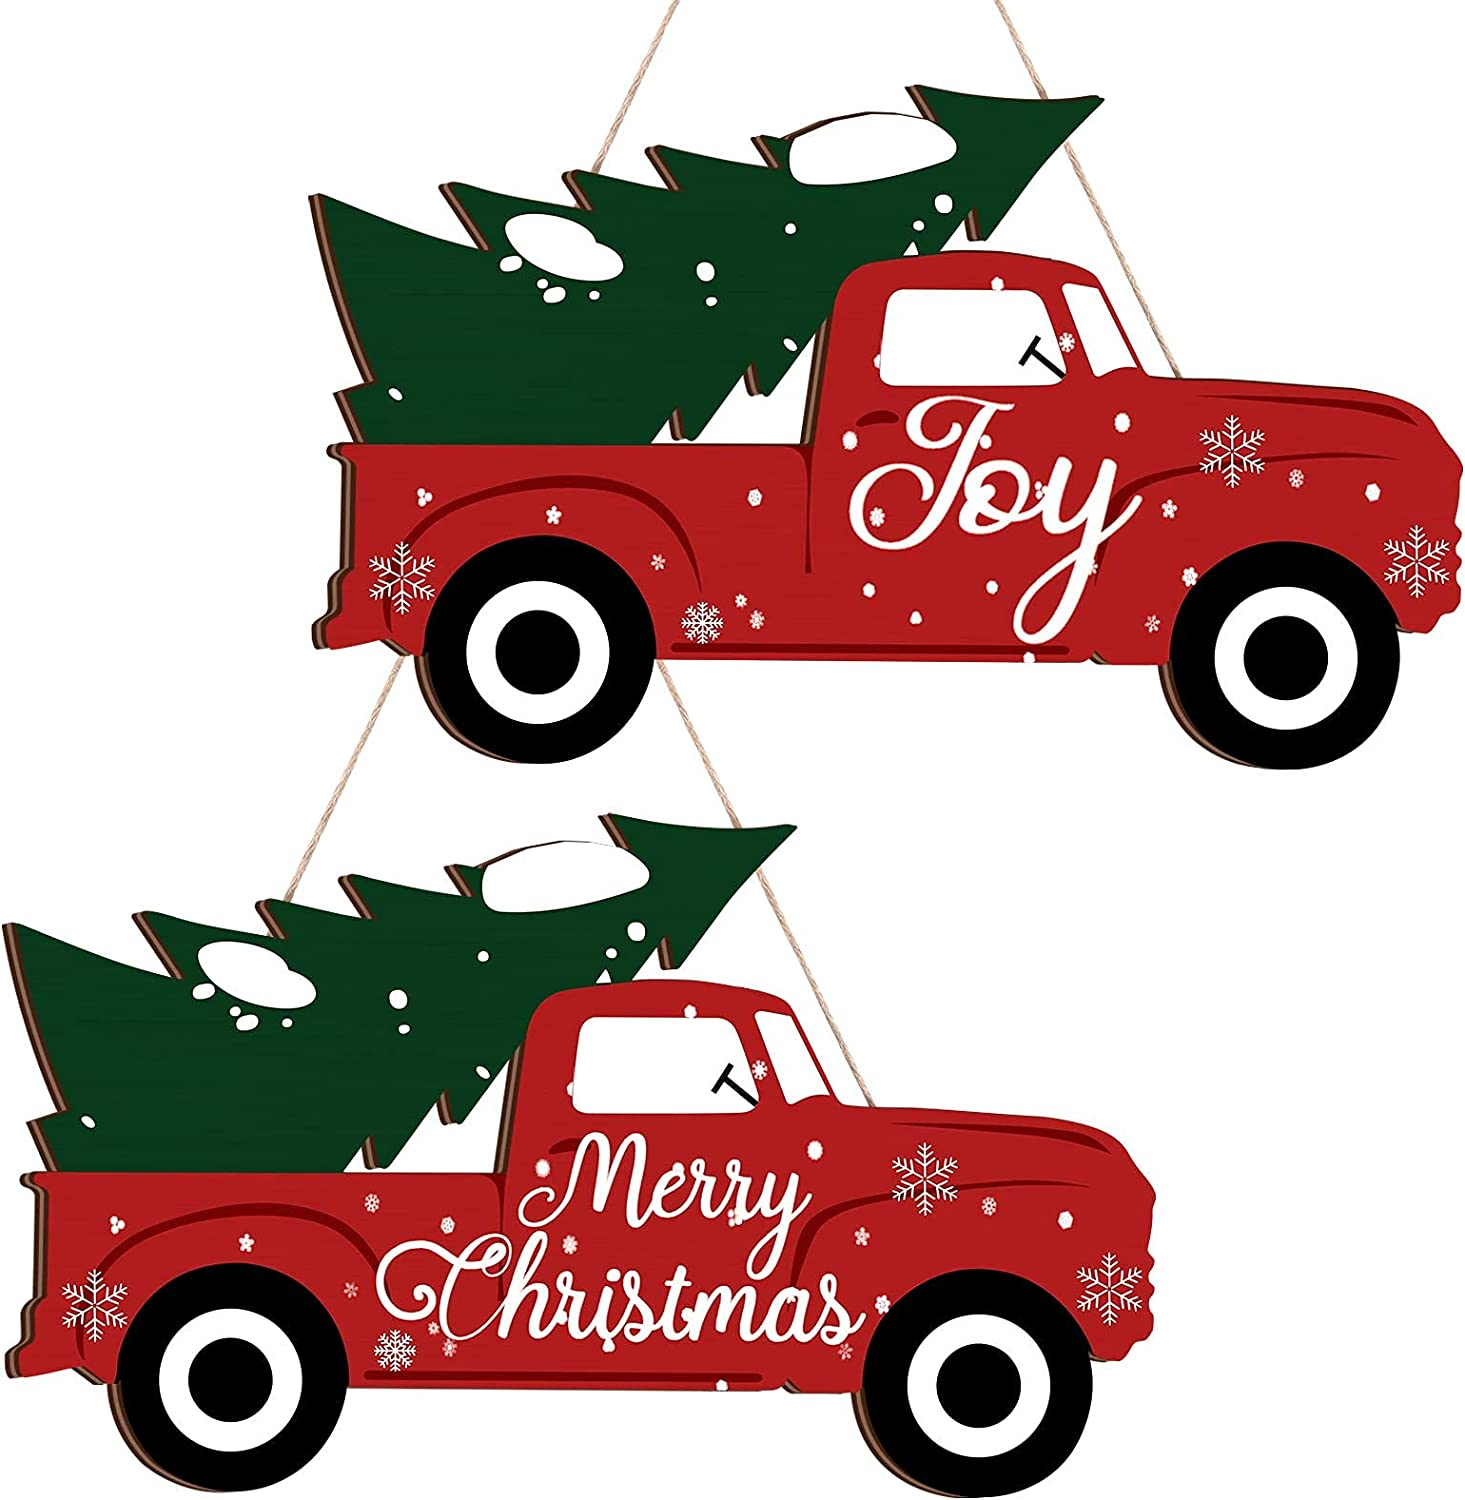 Blulu Christmas Joy Red Truck Sign 2 Pieces Christmas Door Decor Christmas Joy Farmhouse Hanging Wall Porch Decorations Large Holiday Display Decor for Home Front Door Christmas Tree Decoration